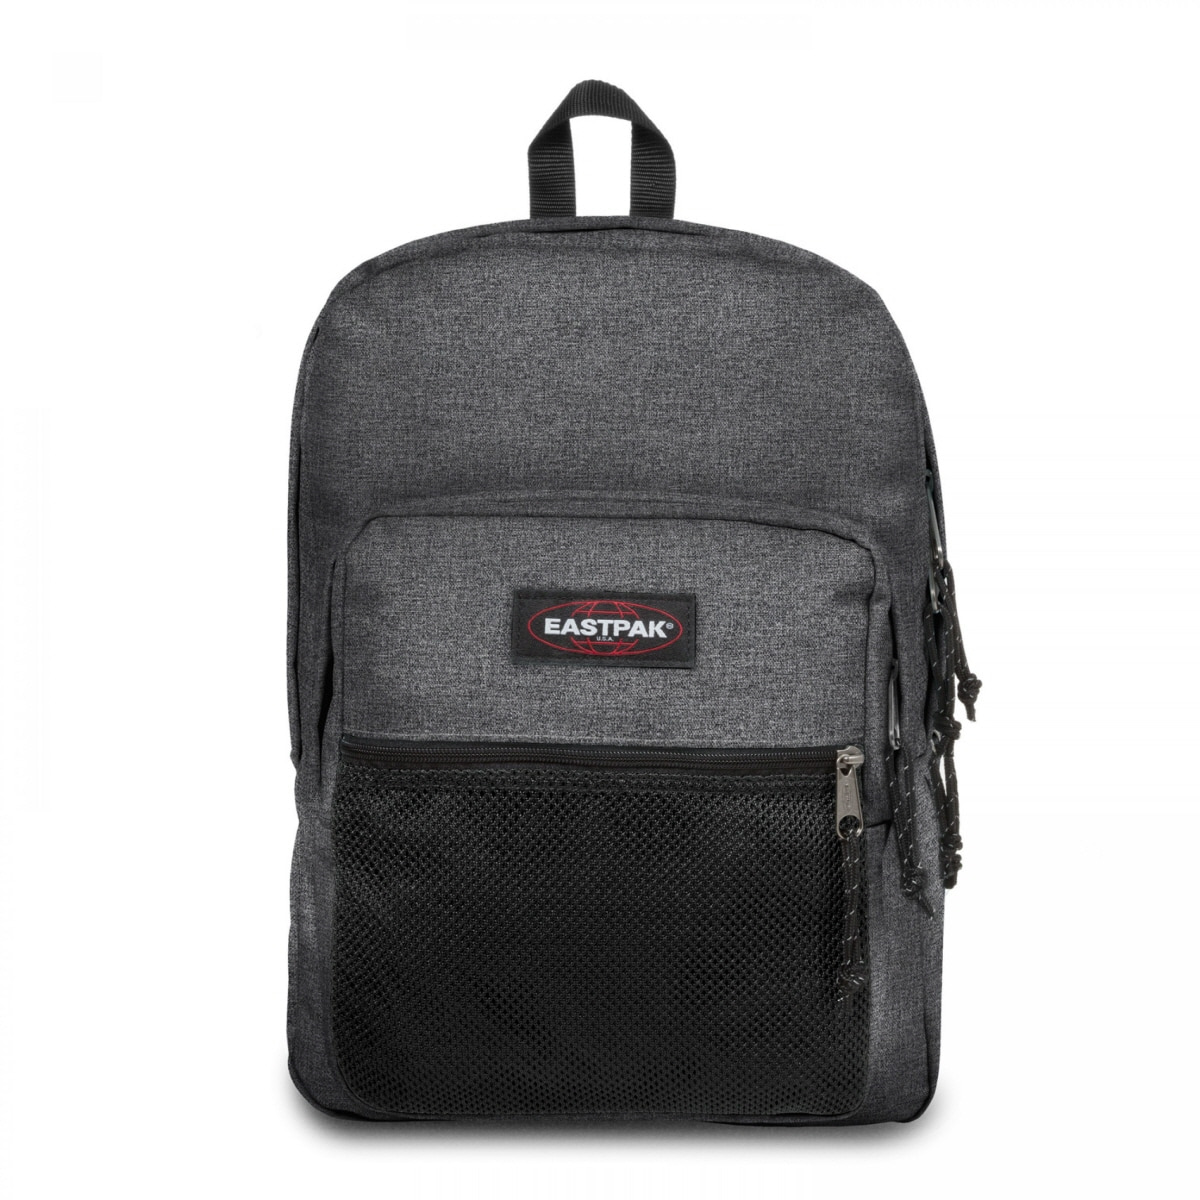 [EASTPAK] AUTHENTIC 백팩 피나클 EJCBA07 77H